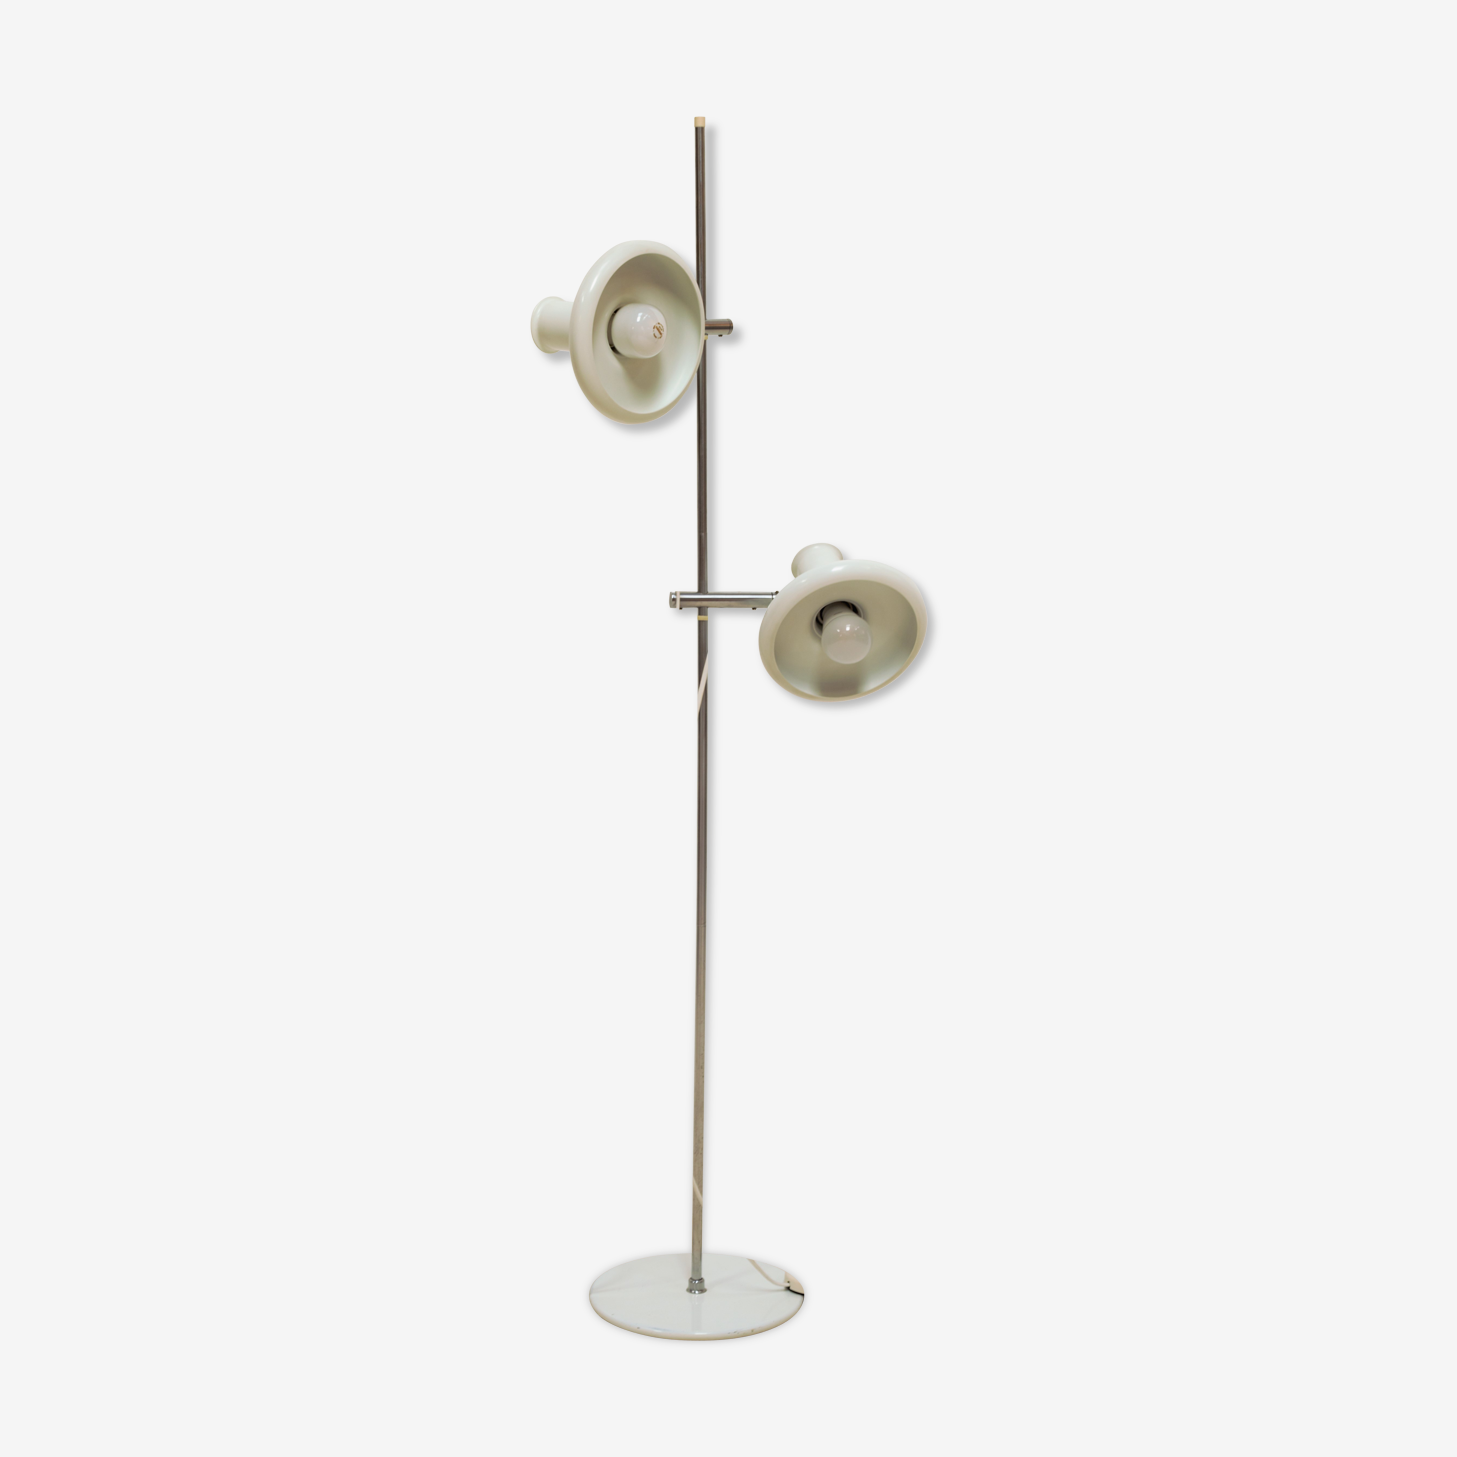 Lampadaire Optima par Hans Due